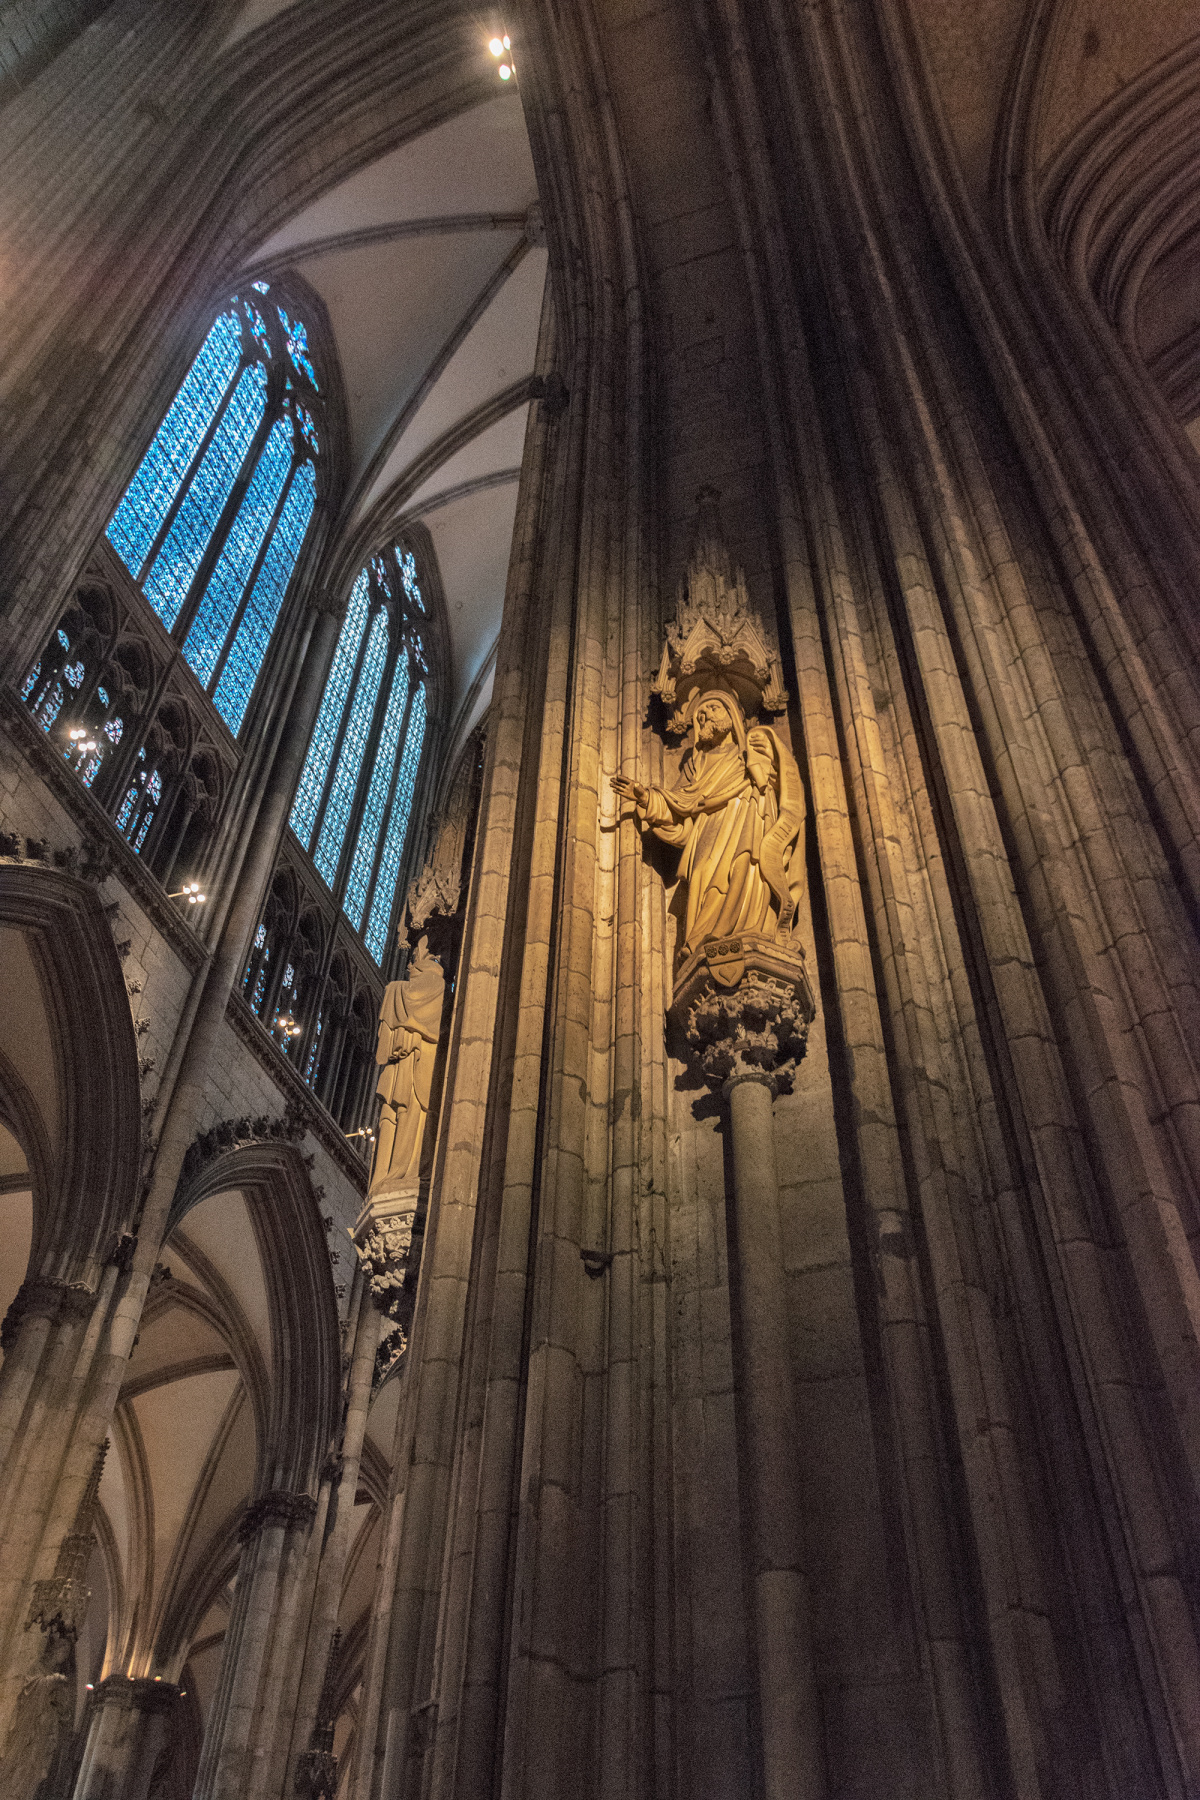 Welcome to the Kölner Dom